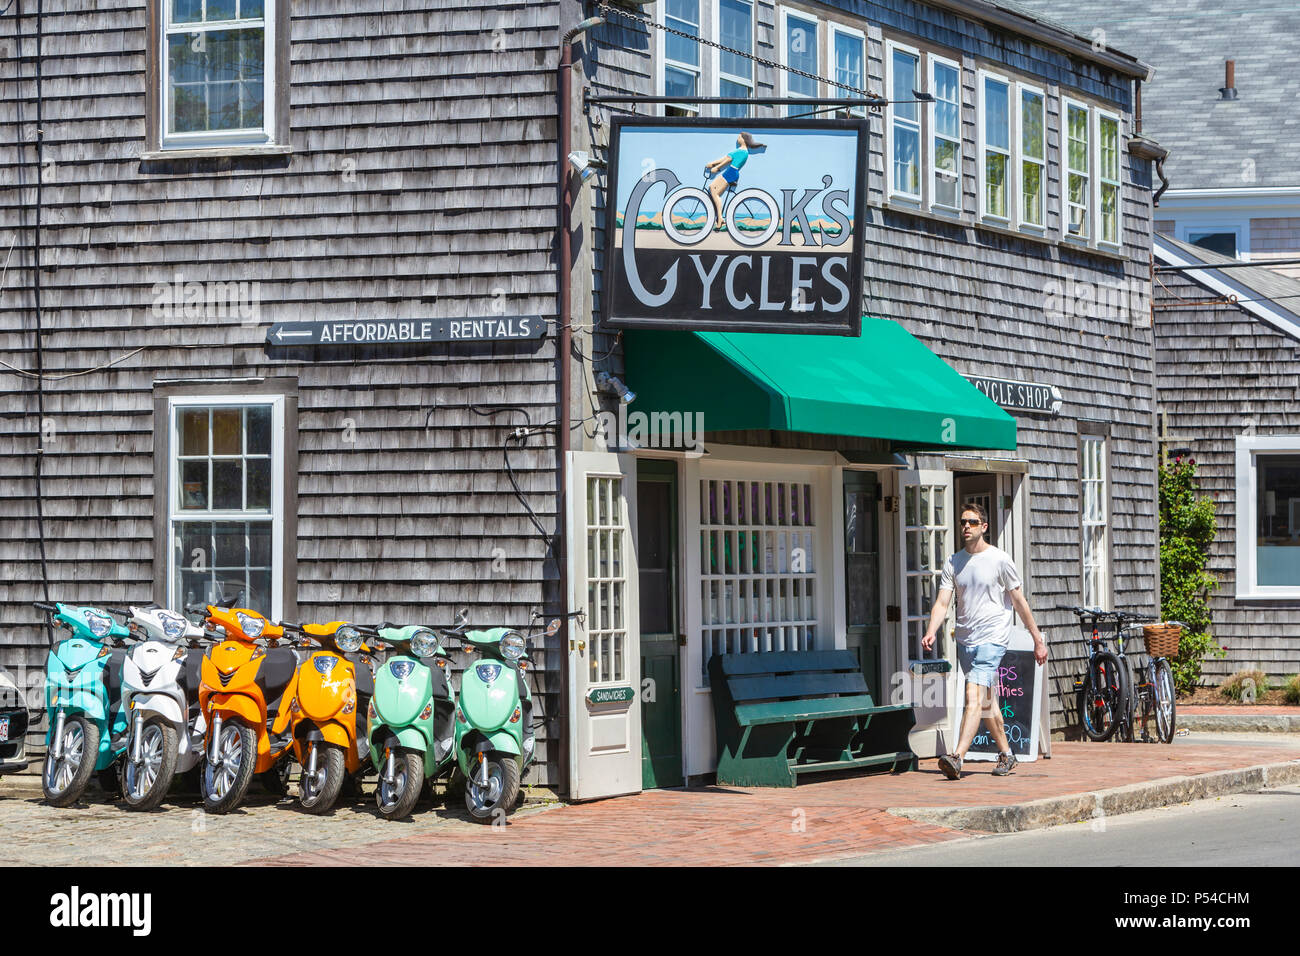 Cook's Cycles, one of a number of shops offering rental bikes and scooters for tourists in Nantucket, Massachusetts. - Stock Image